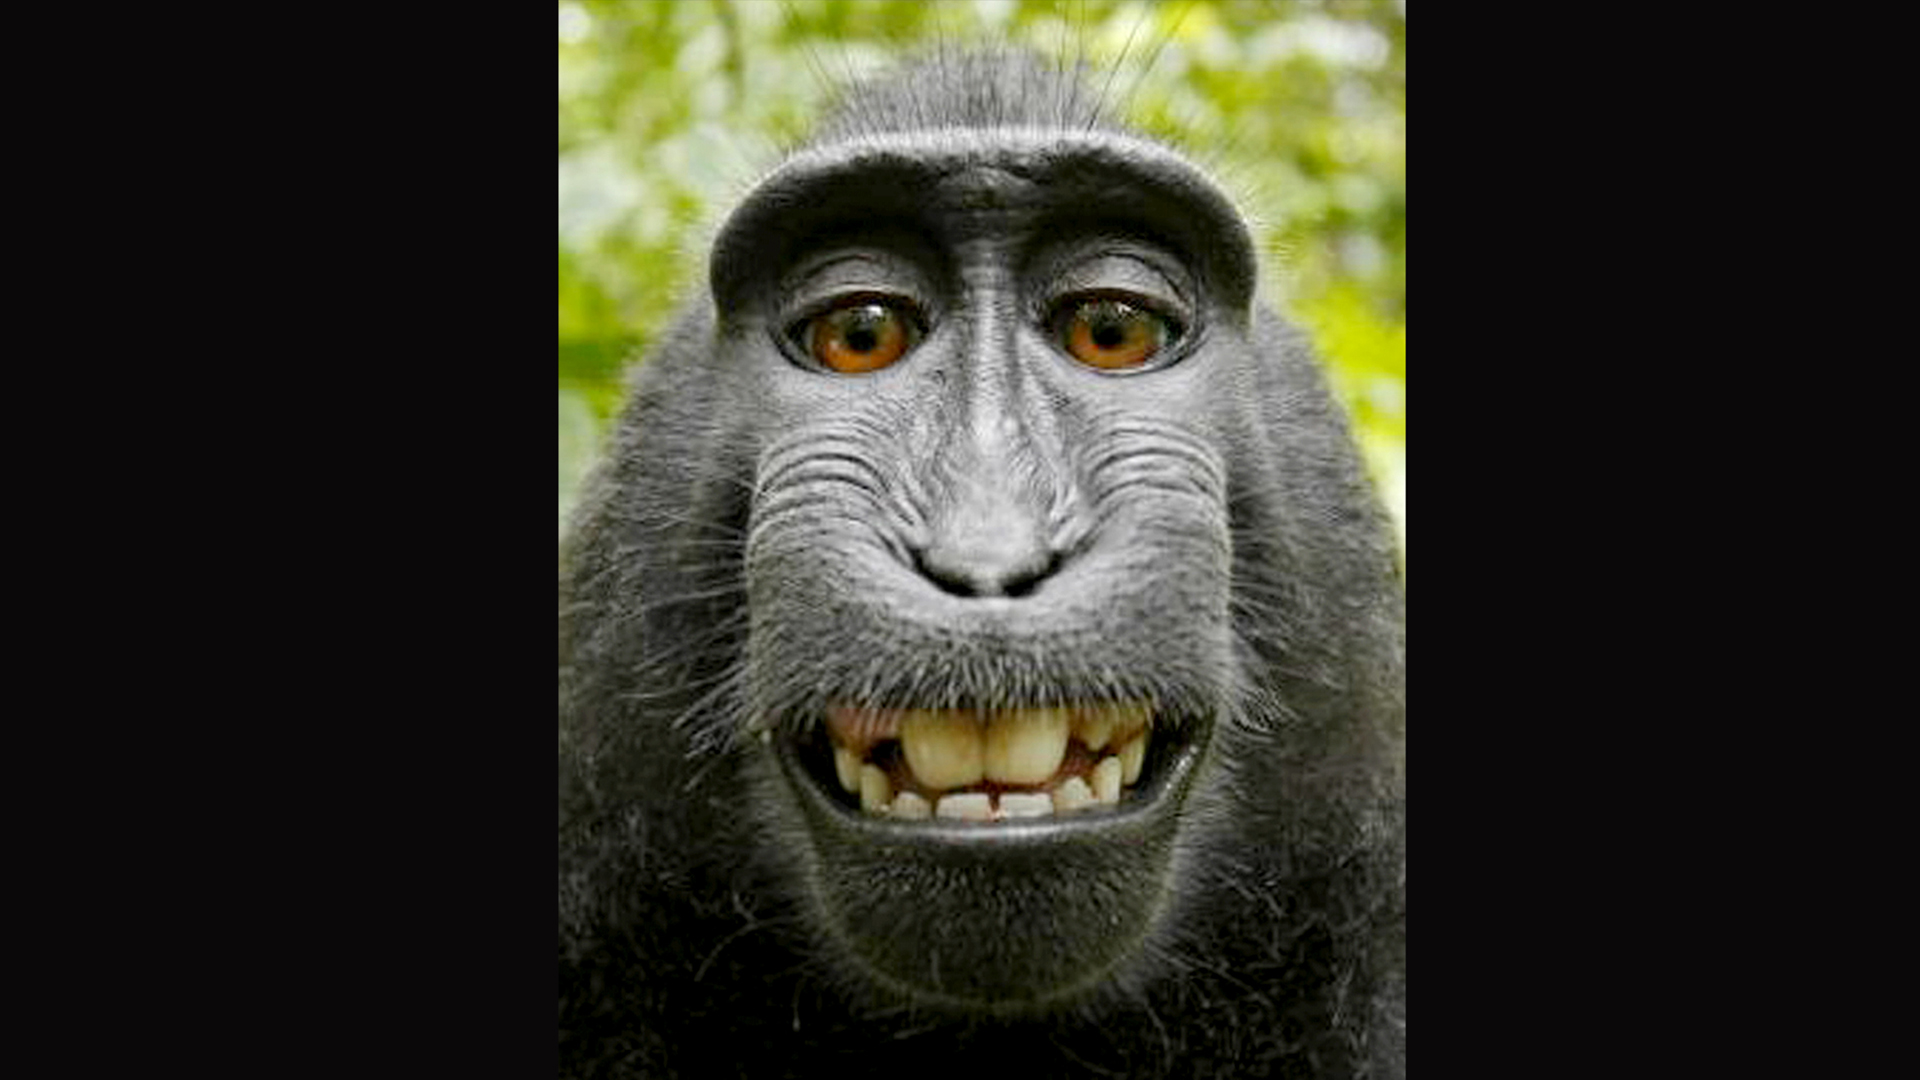 monkey selfie copyright lawsuit settled after deal reached nbc news